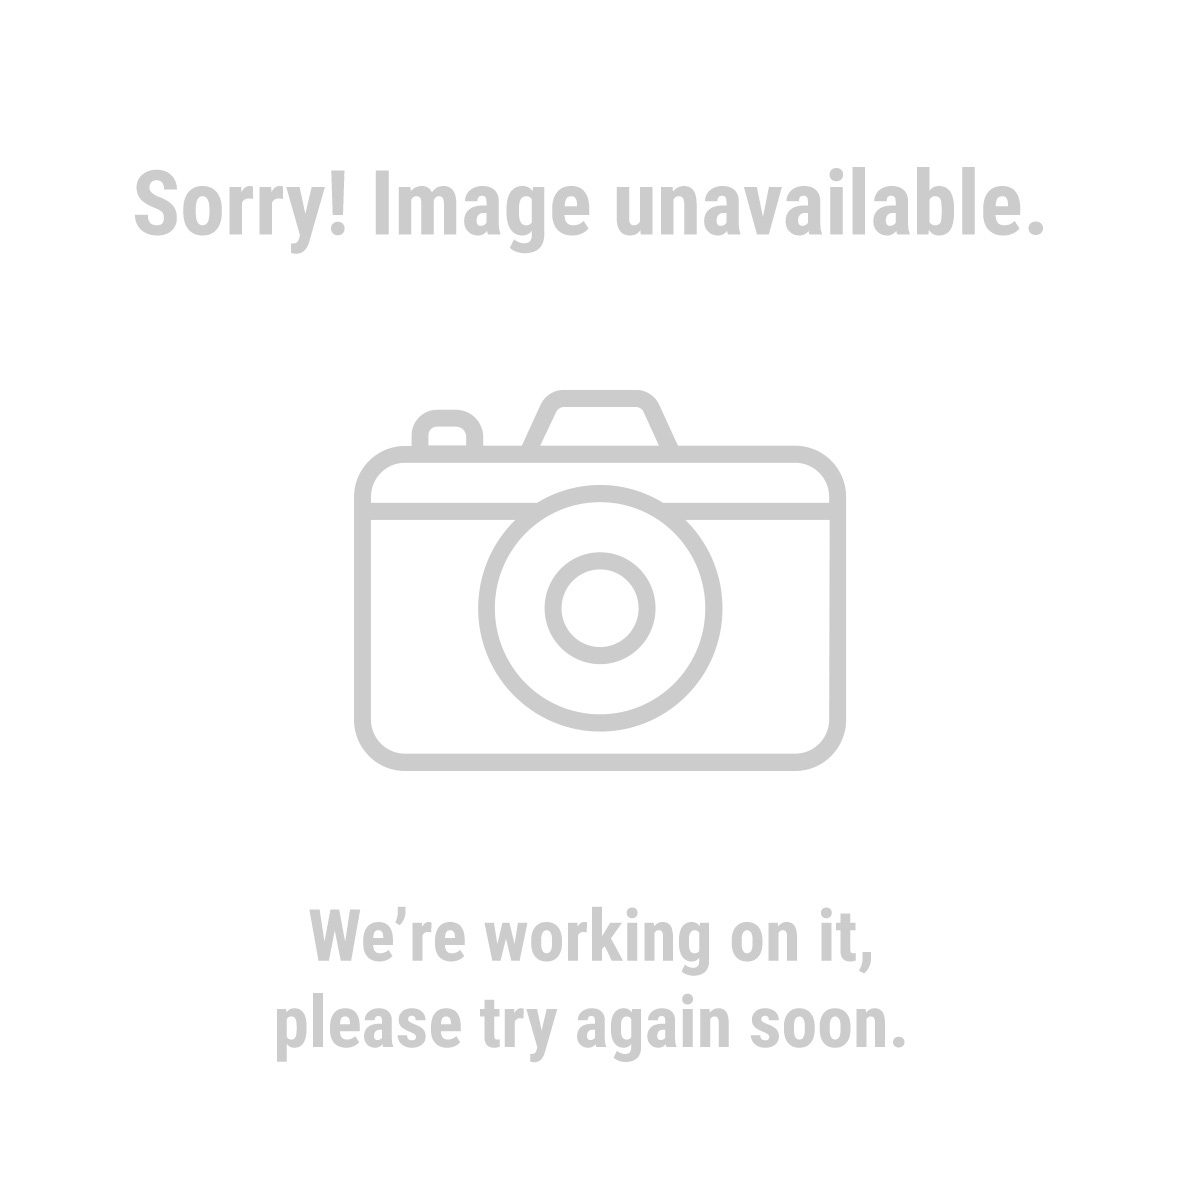 Autel 62385 Automotive Diagnostic and Analysis System